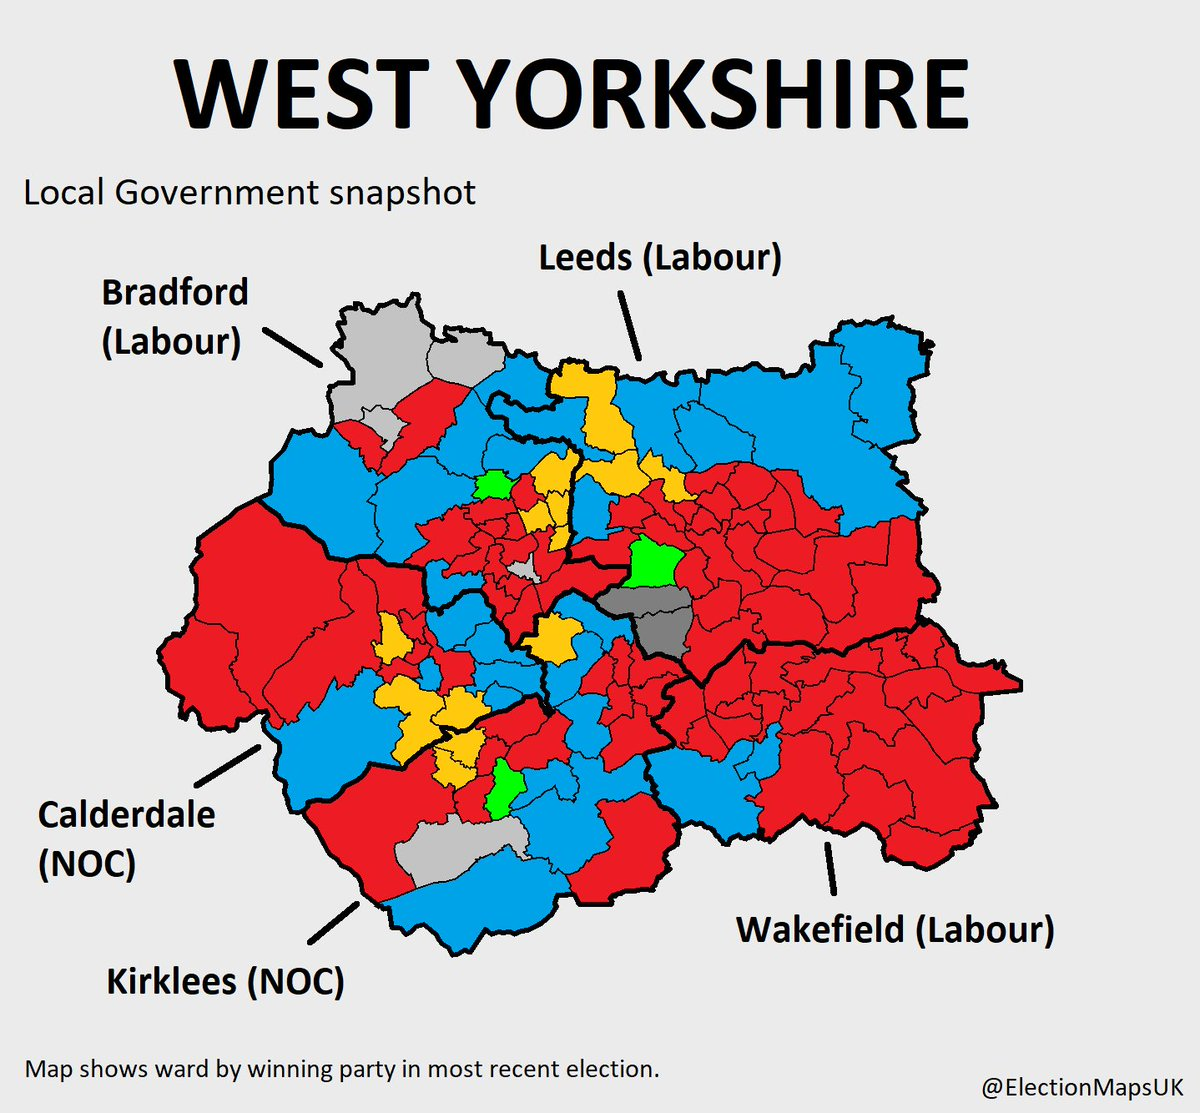 Election Maps UK on Twitter MAP THREAD Here is a thread to show